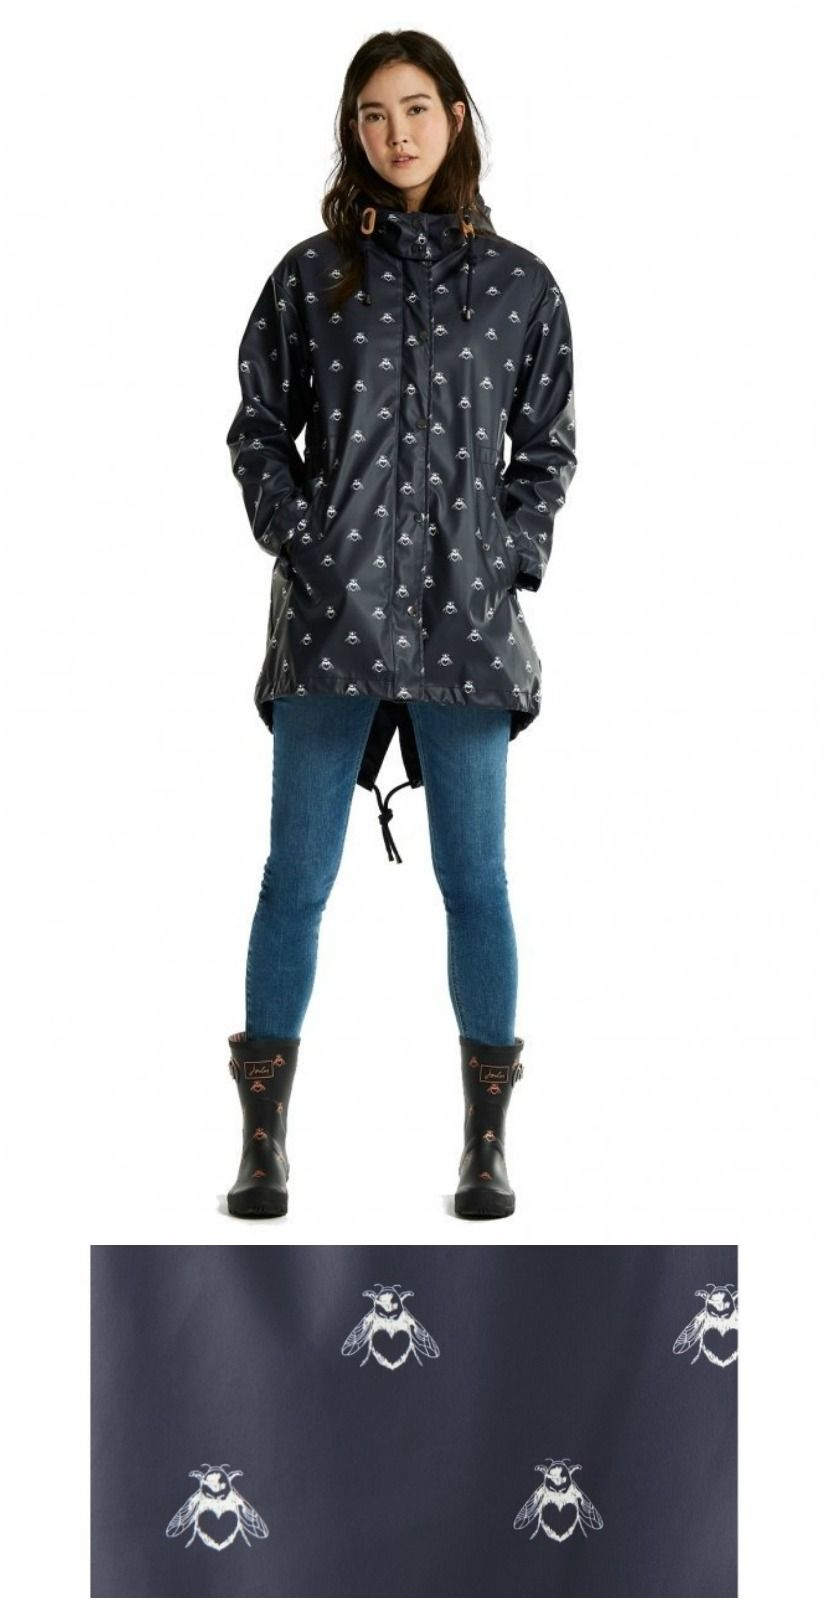 Joules Mistralprint Rubber Womens Parka. Parka style. Rubberised fabric.  Peaked hood. Full